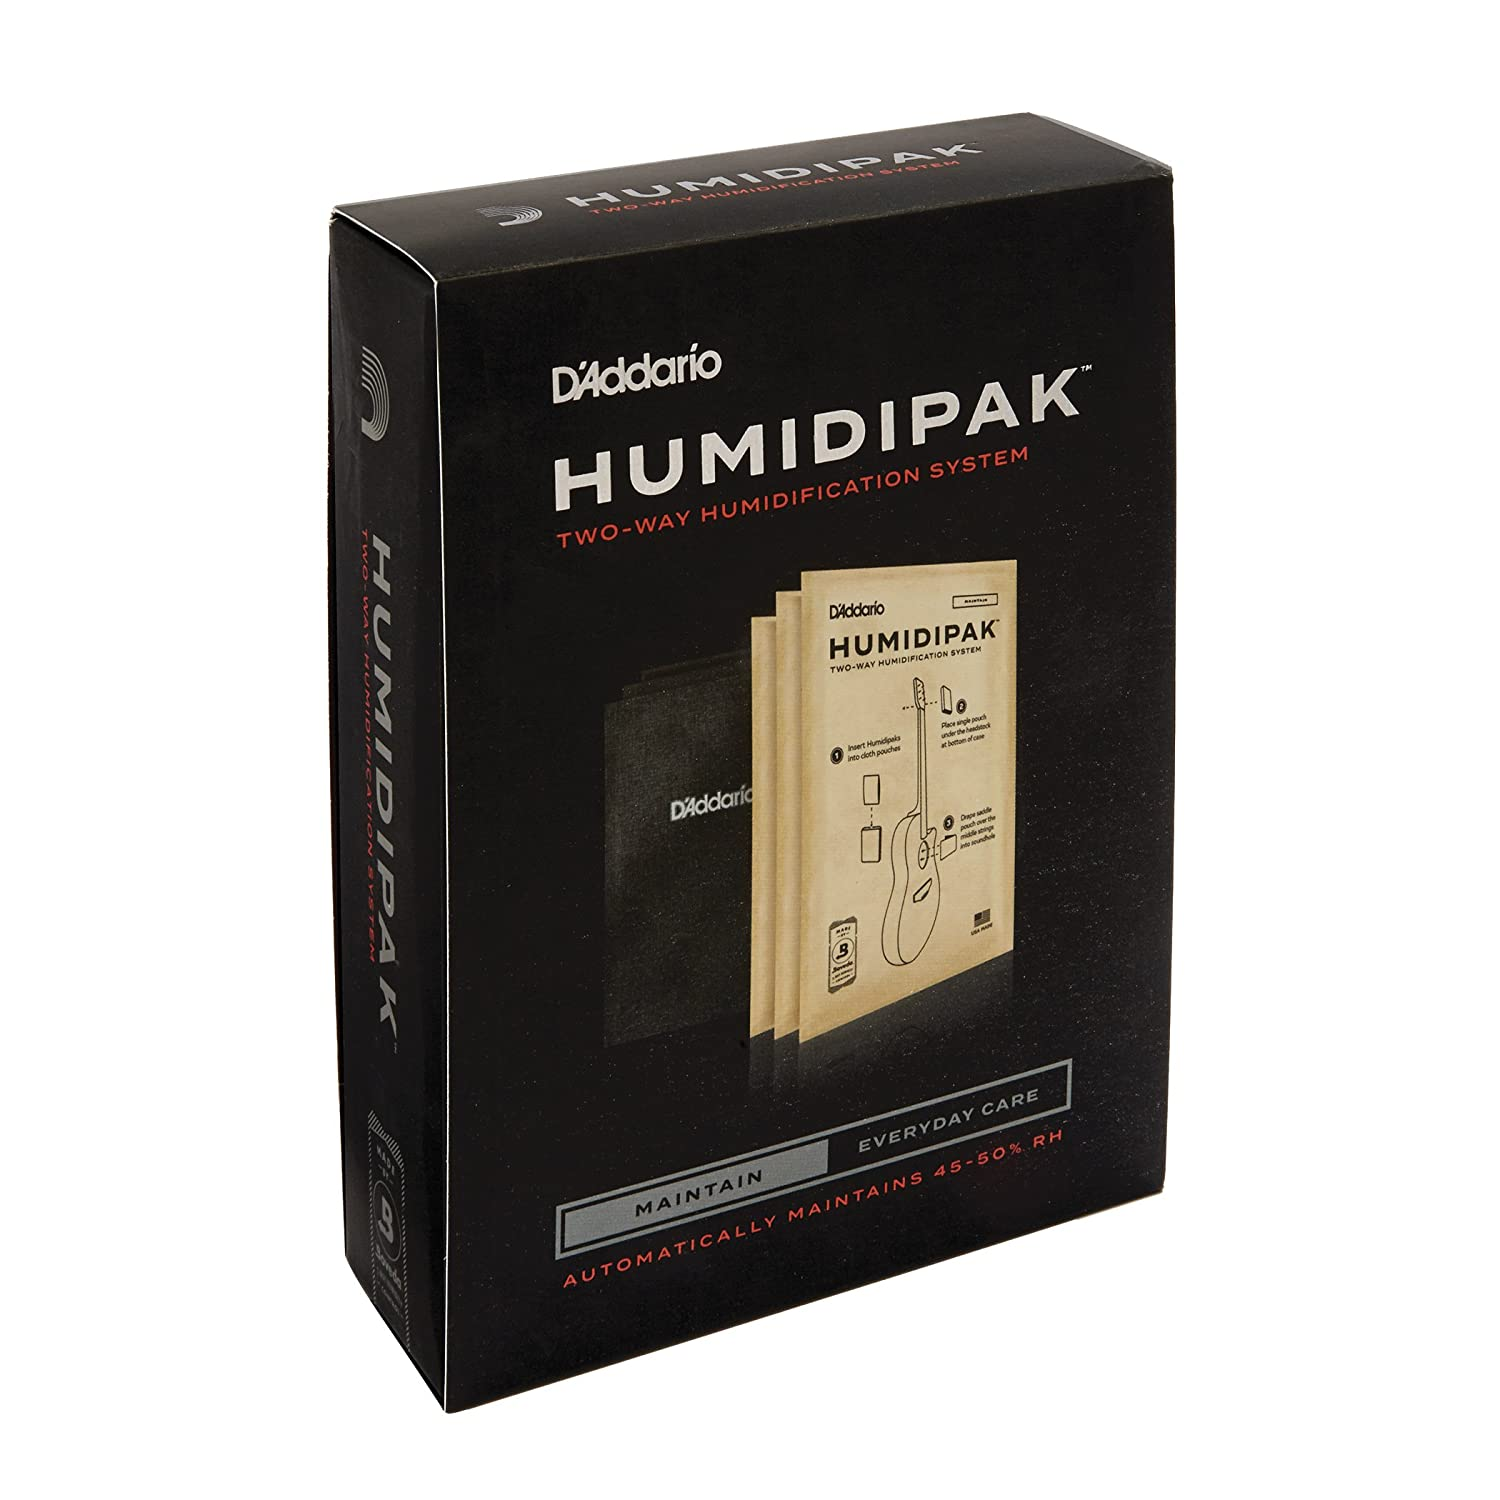 D'Addario Accessories Humidipak Two-Way Humidification System Review